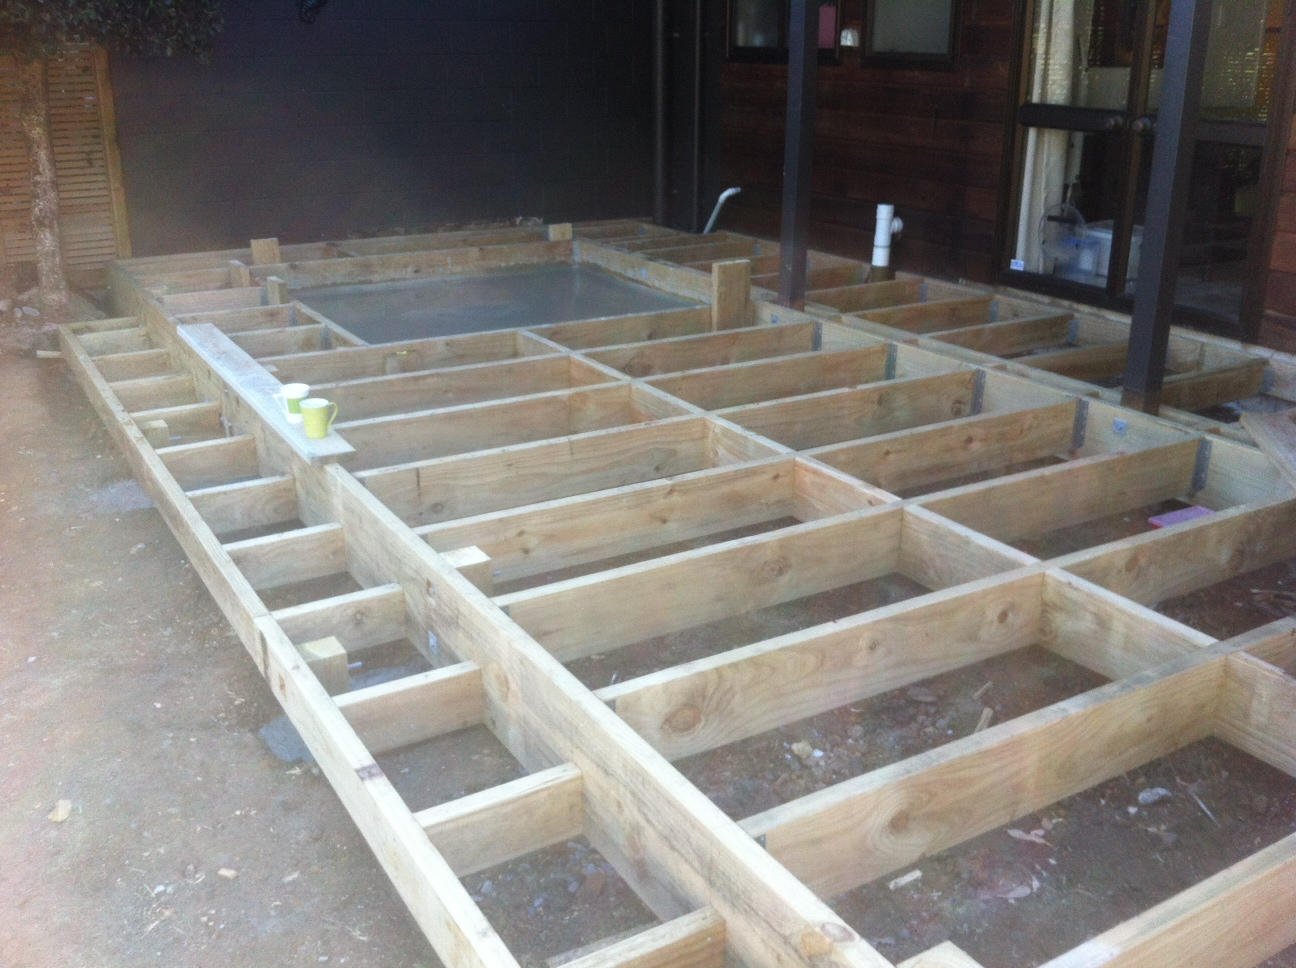 Deck framing hot tub